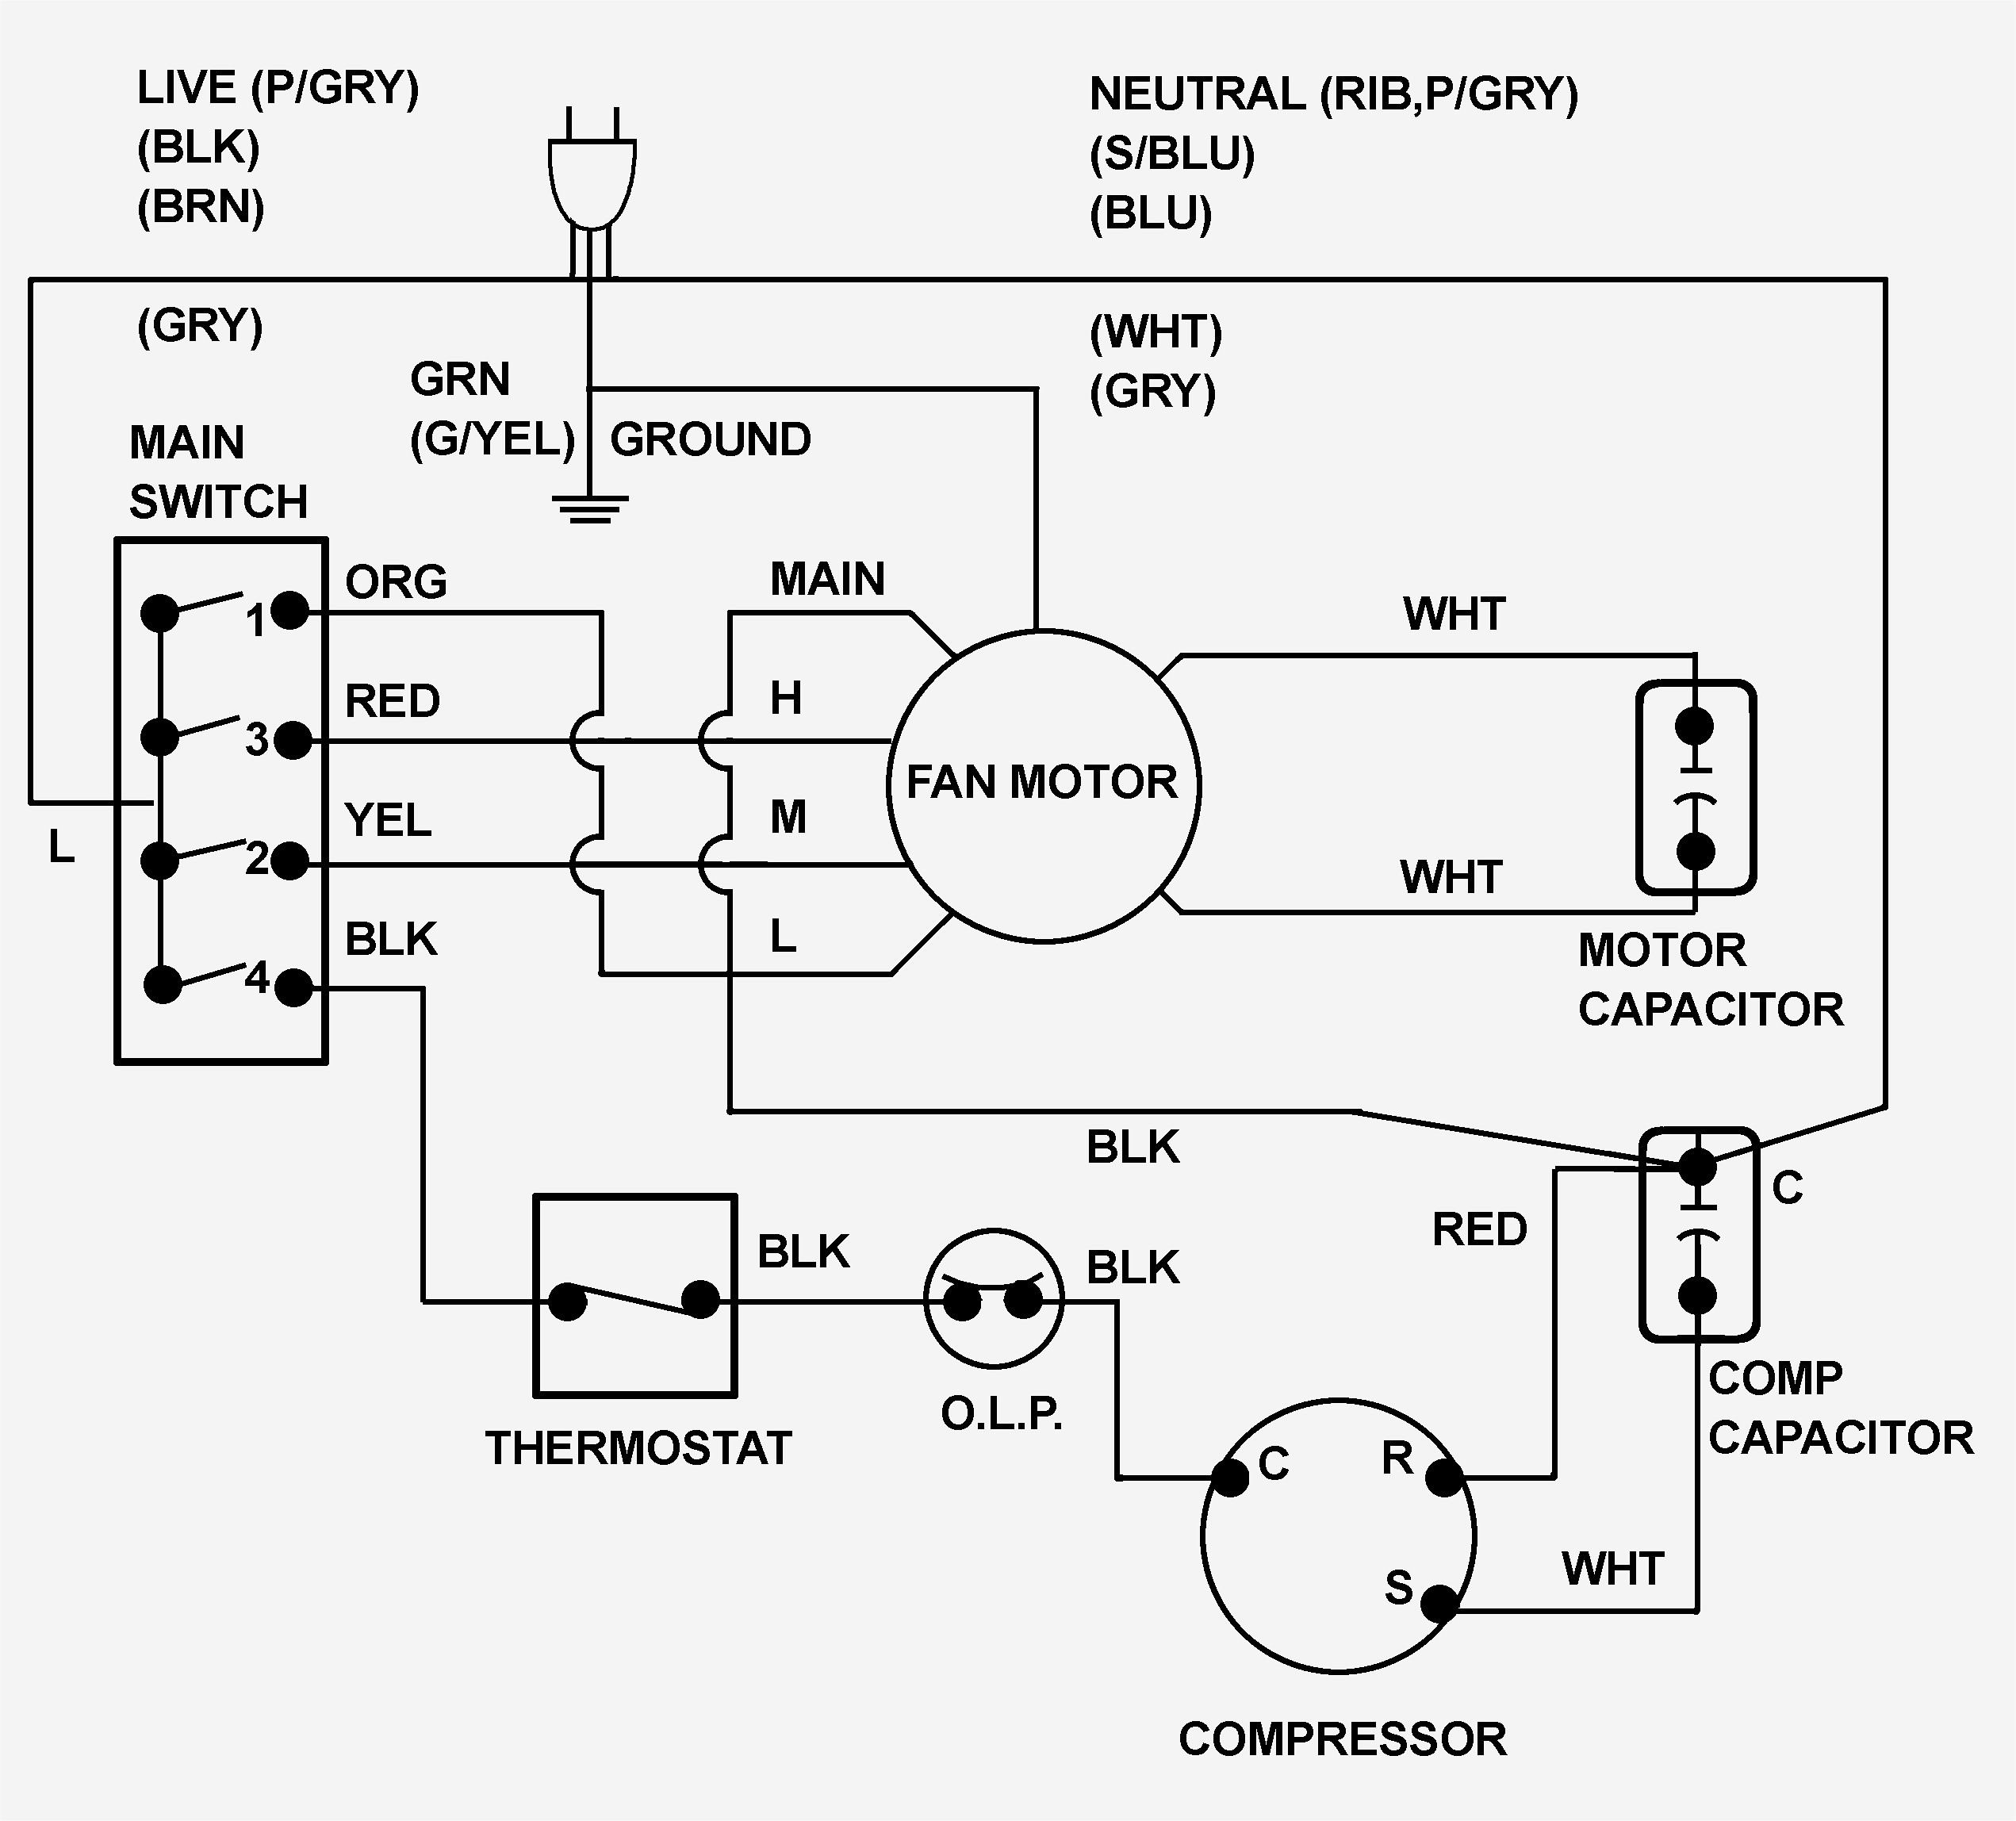 O General Window Ac Wiring Diagram -2001 Toyota Echo Wiring Diagram Free  Download | Begeboy Wiring Diagram SourceBegeboy Wiring Diagram Source